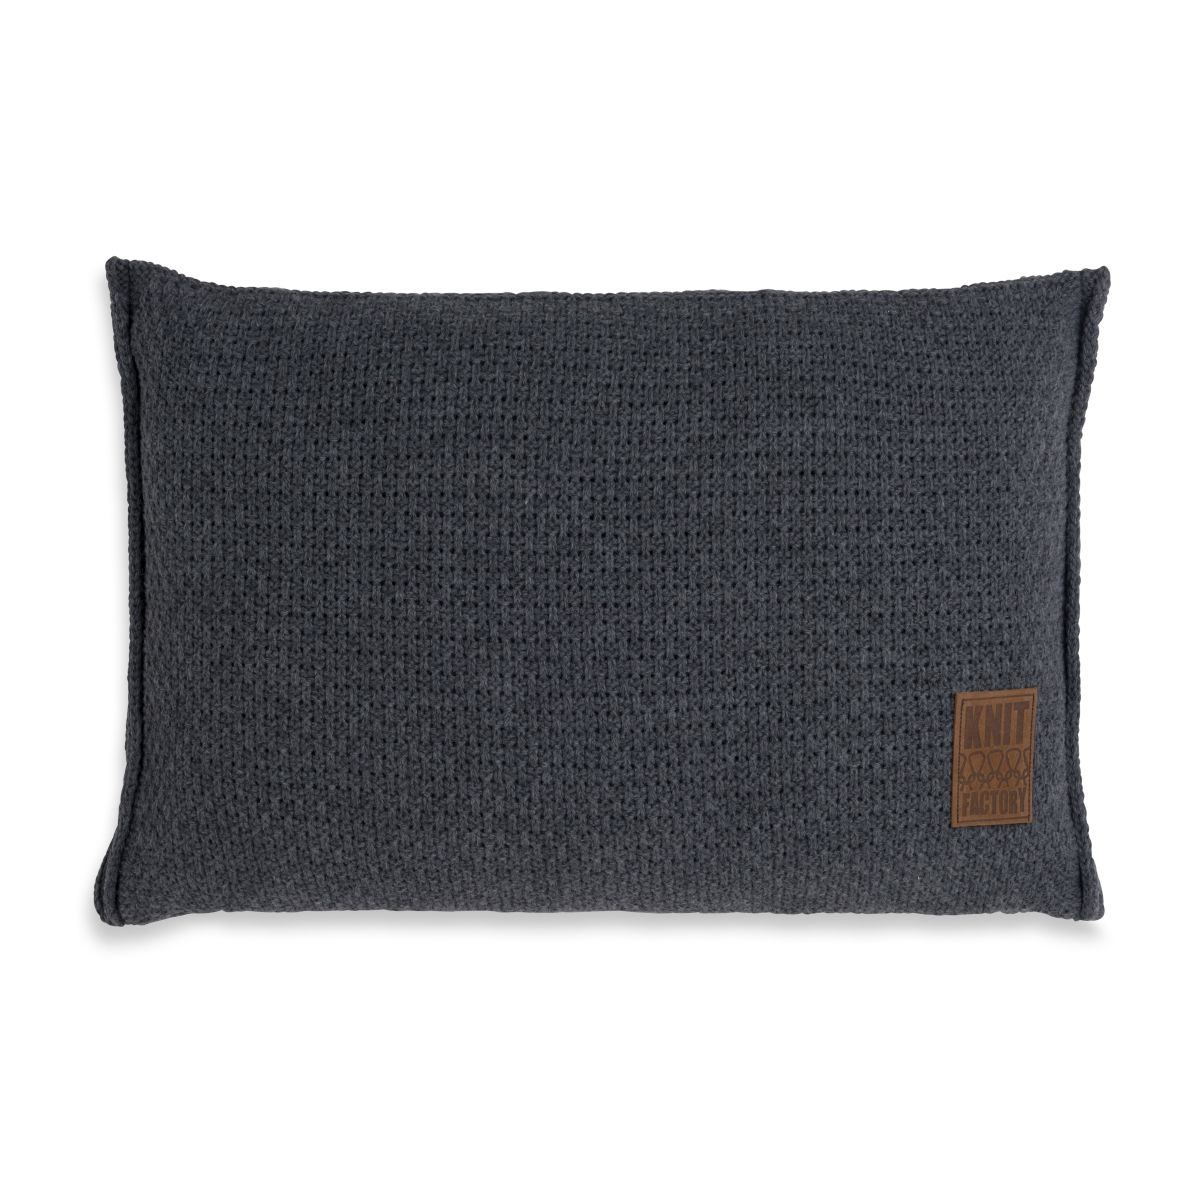 jesse cushion anthracite 60x40